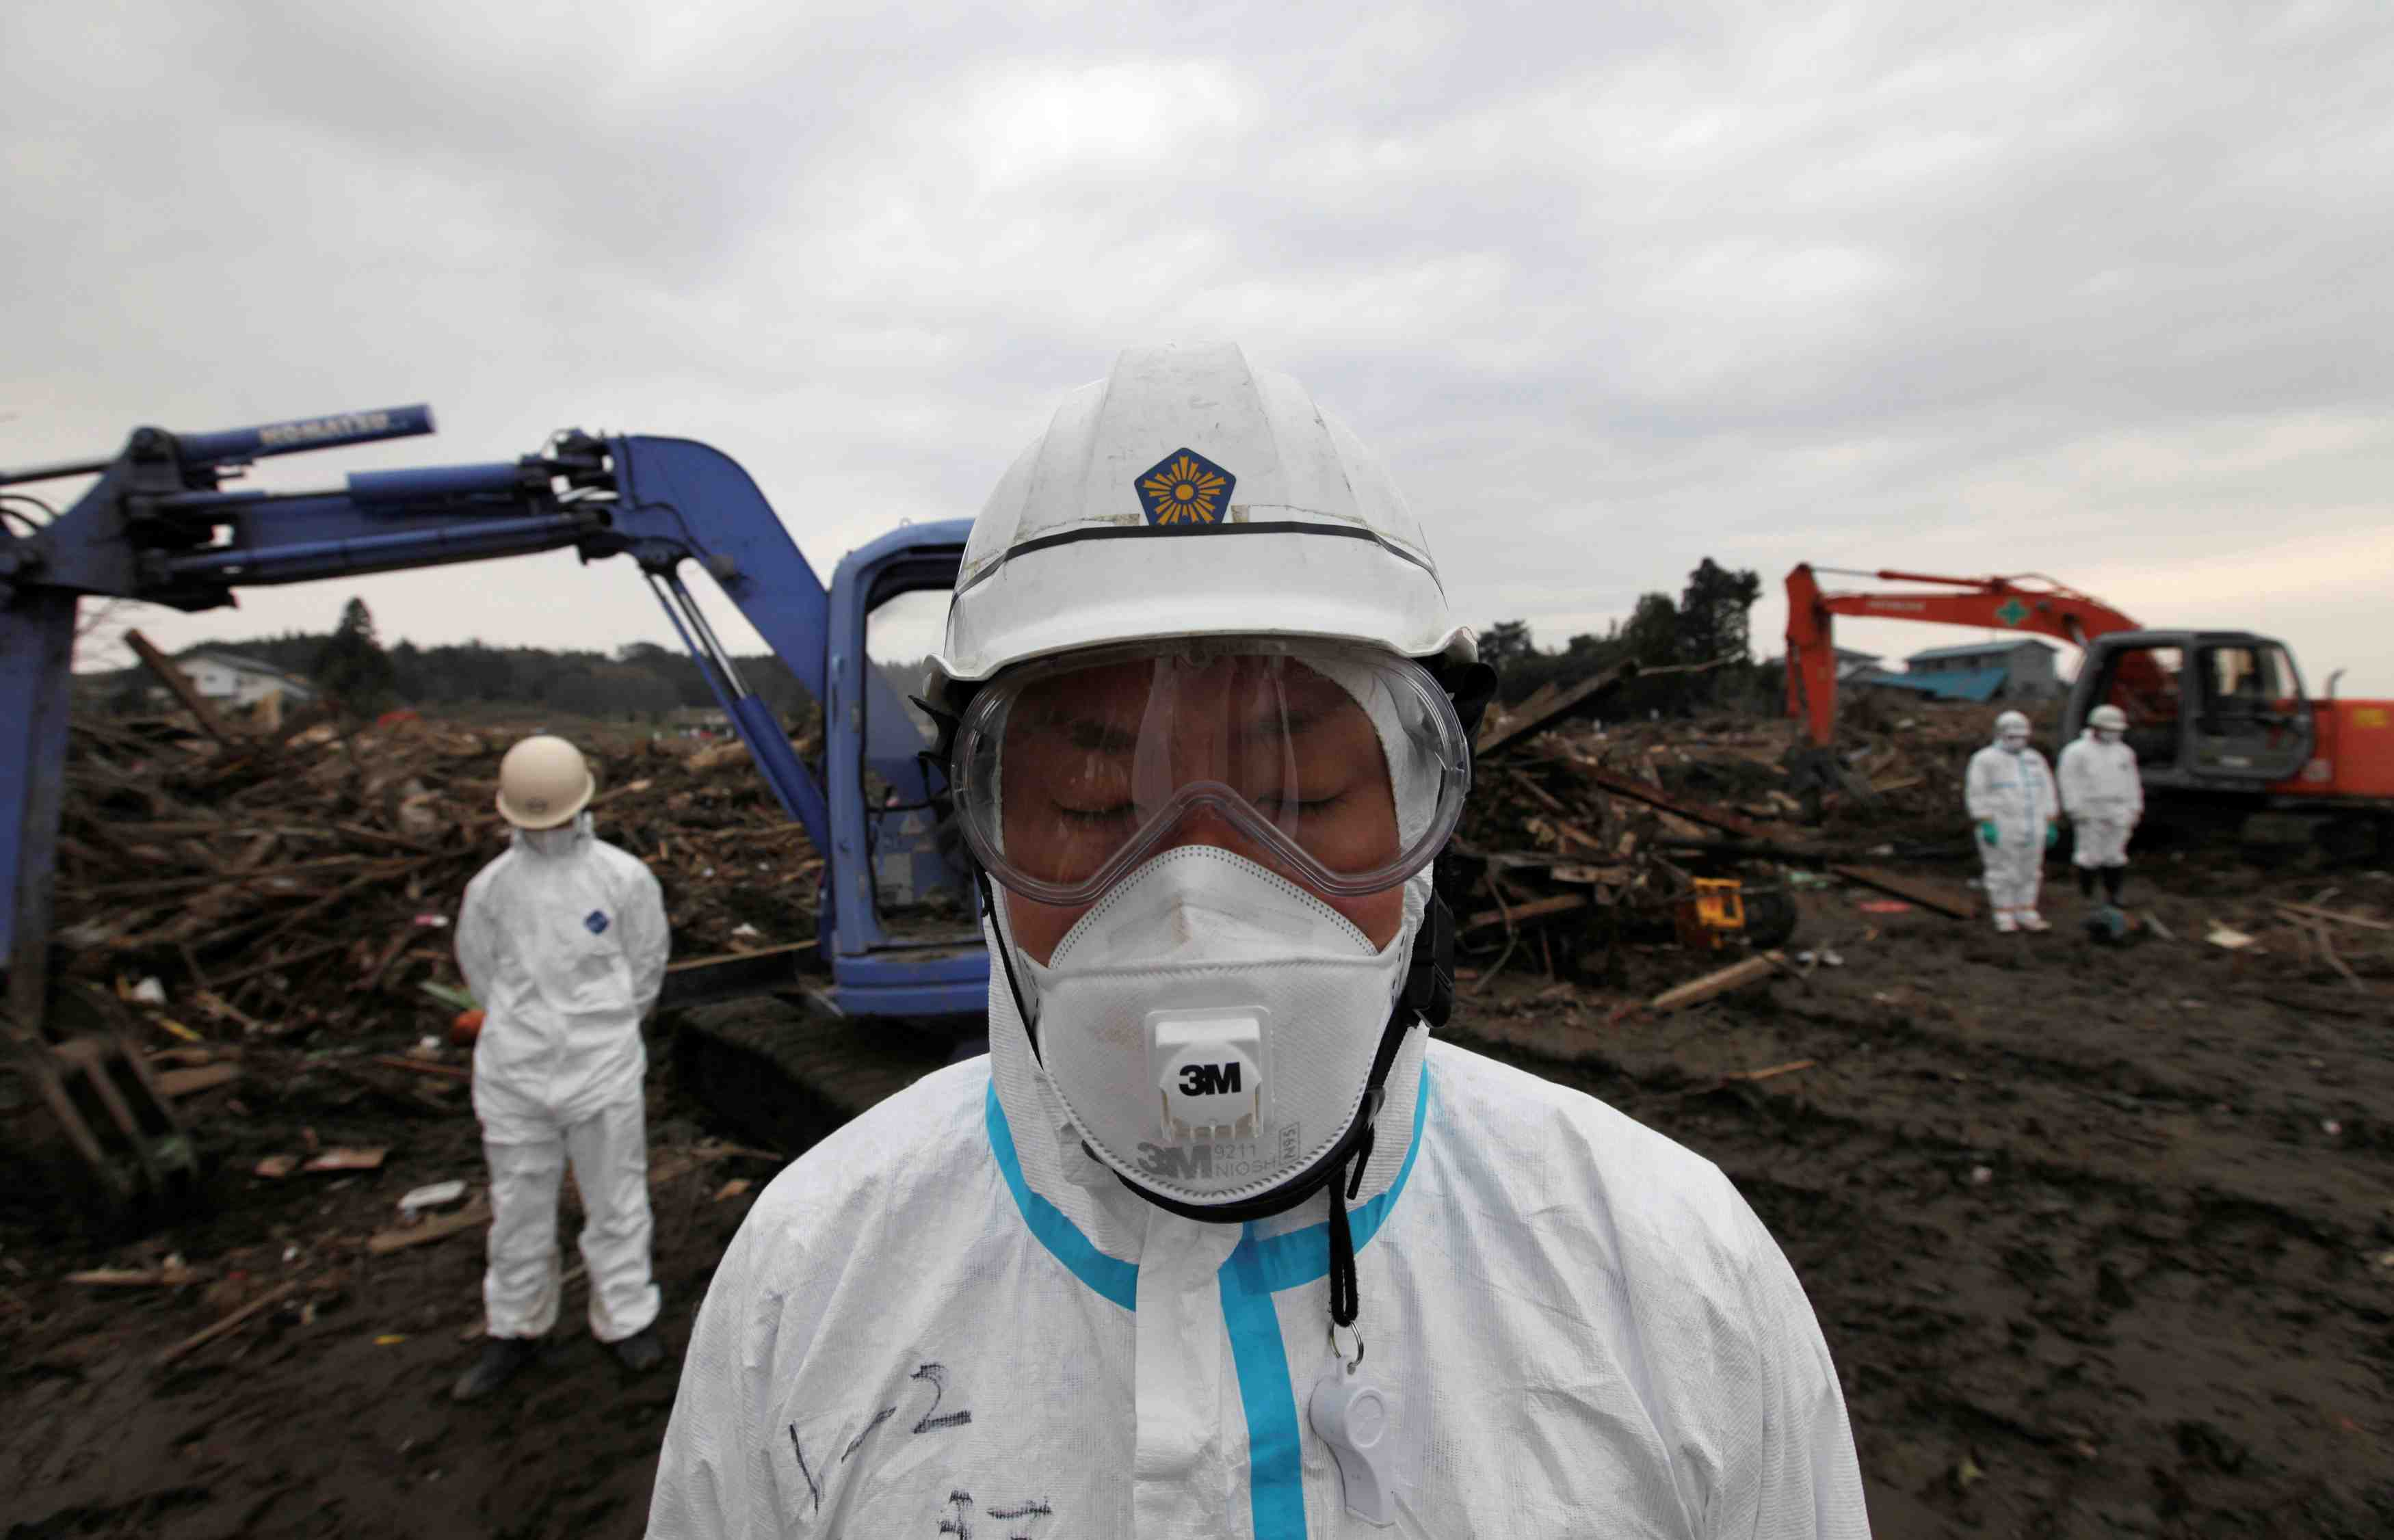 FILE PHOTO: Police officers in protective suits observe a moment of silence for those who were killed by the March 11 earthquake and tsunami, as they search for bodies at a destroyed area in Minamisoma, Fukushima prefecture